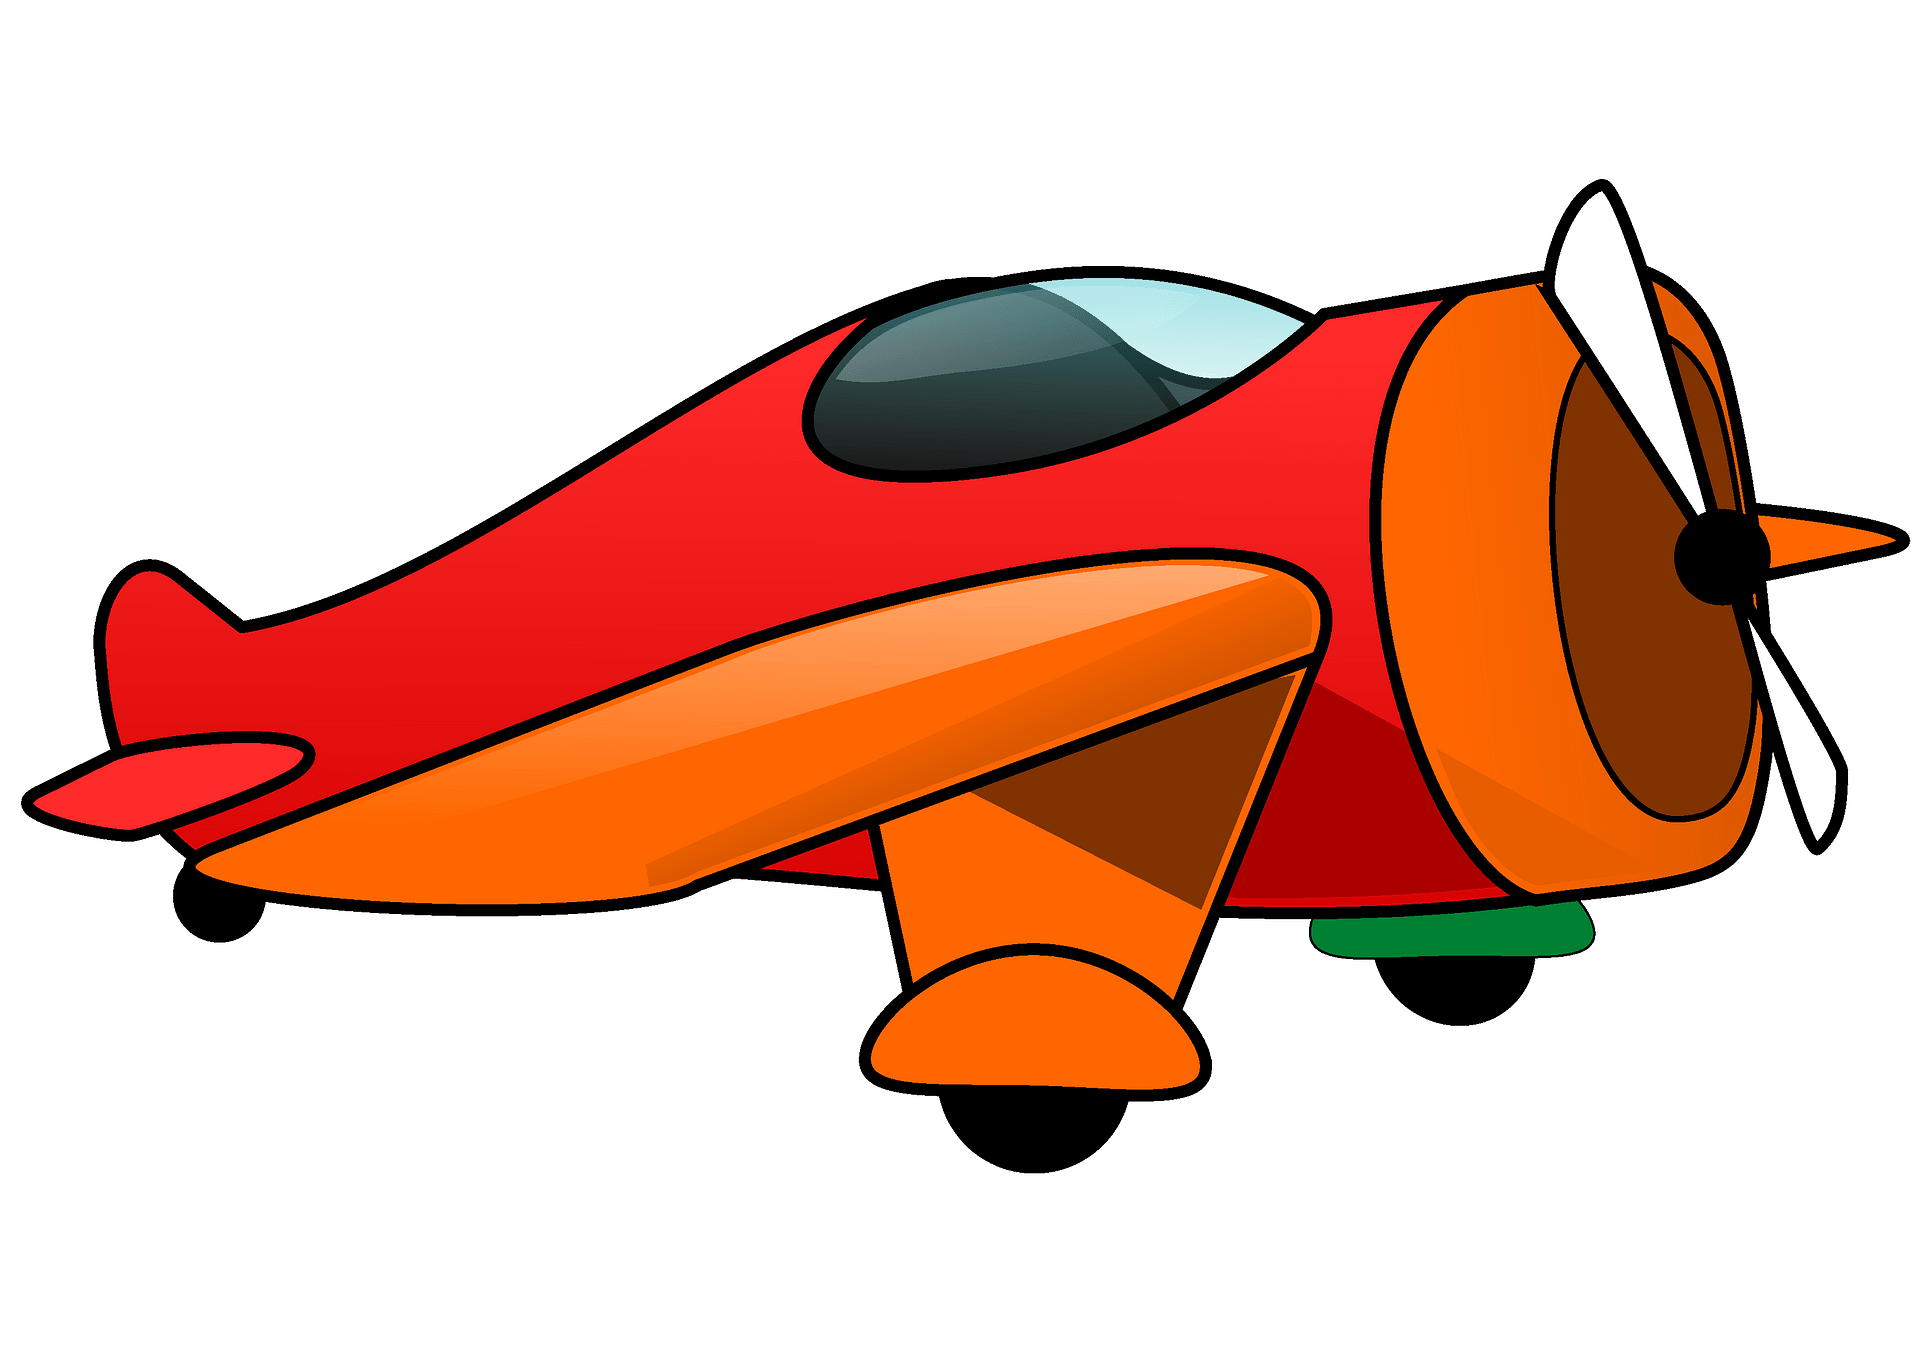 Airplane Clipart Free Download Transparent Png Creazilla